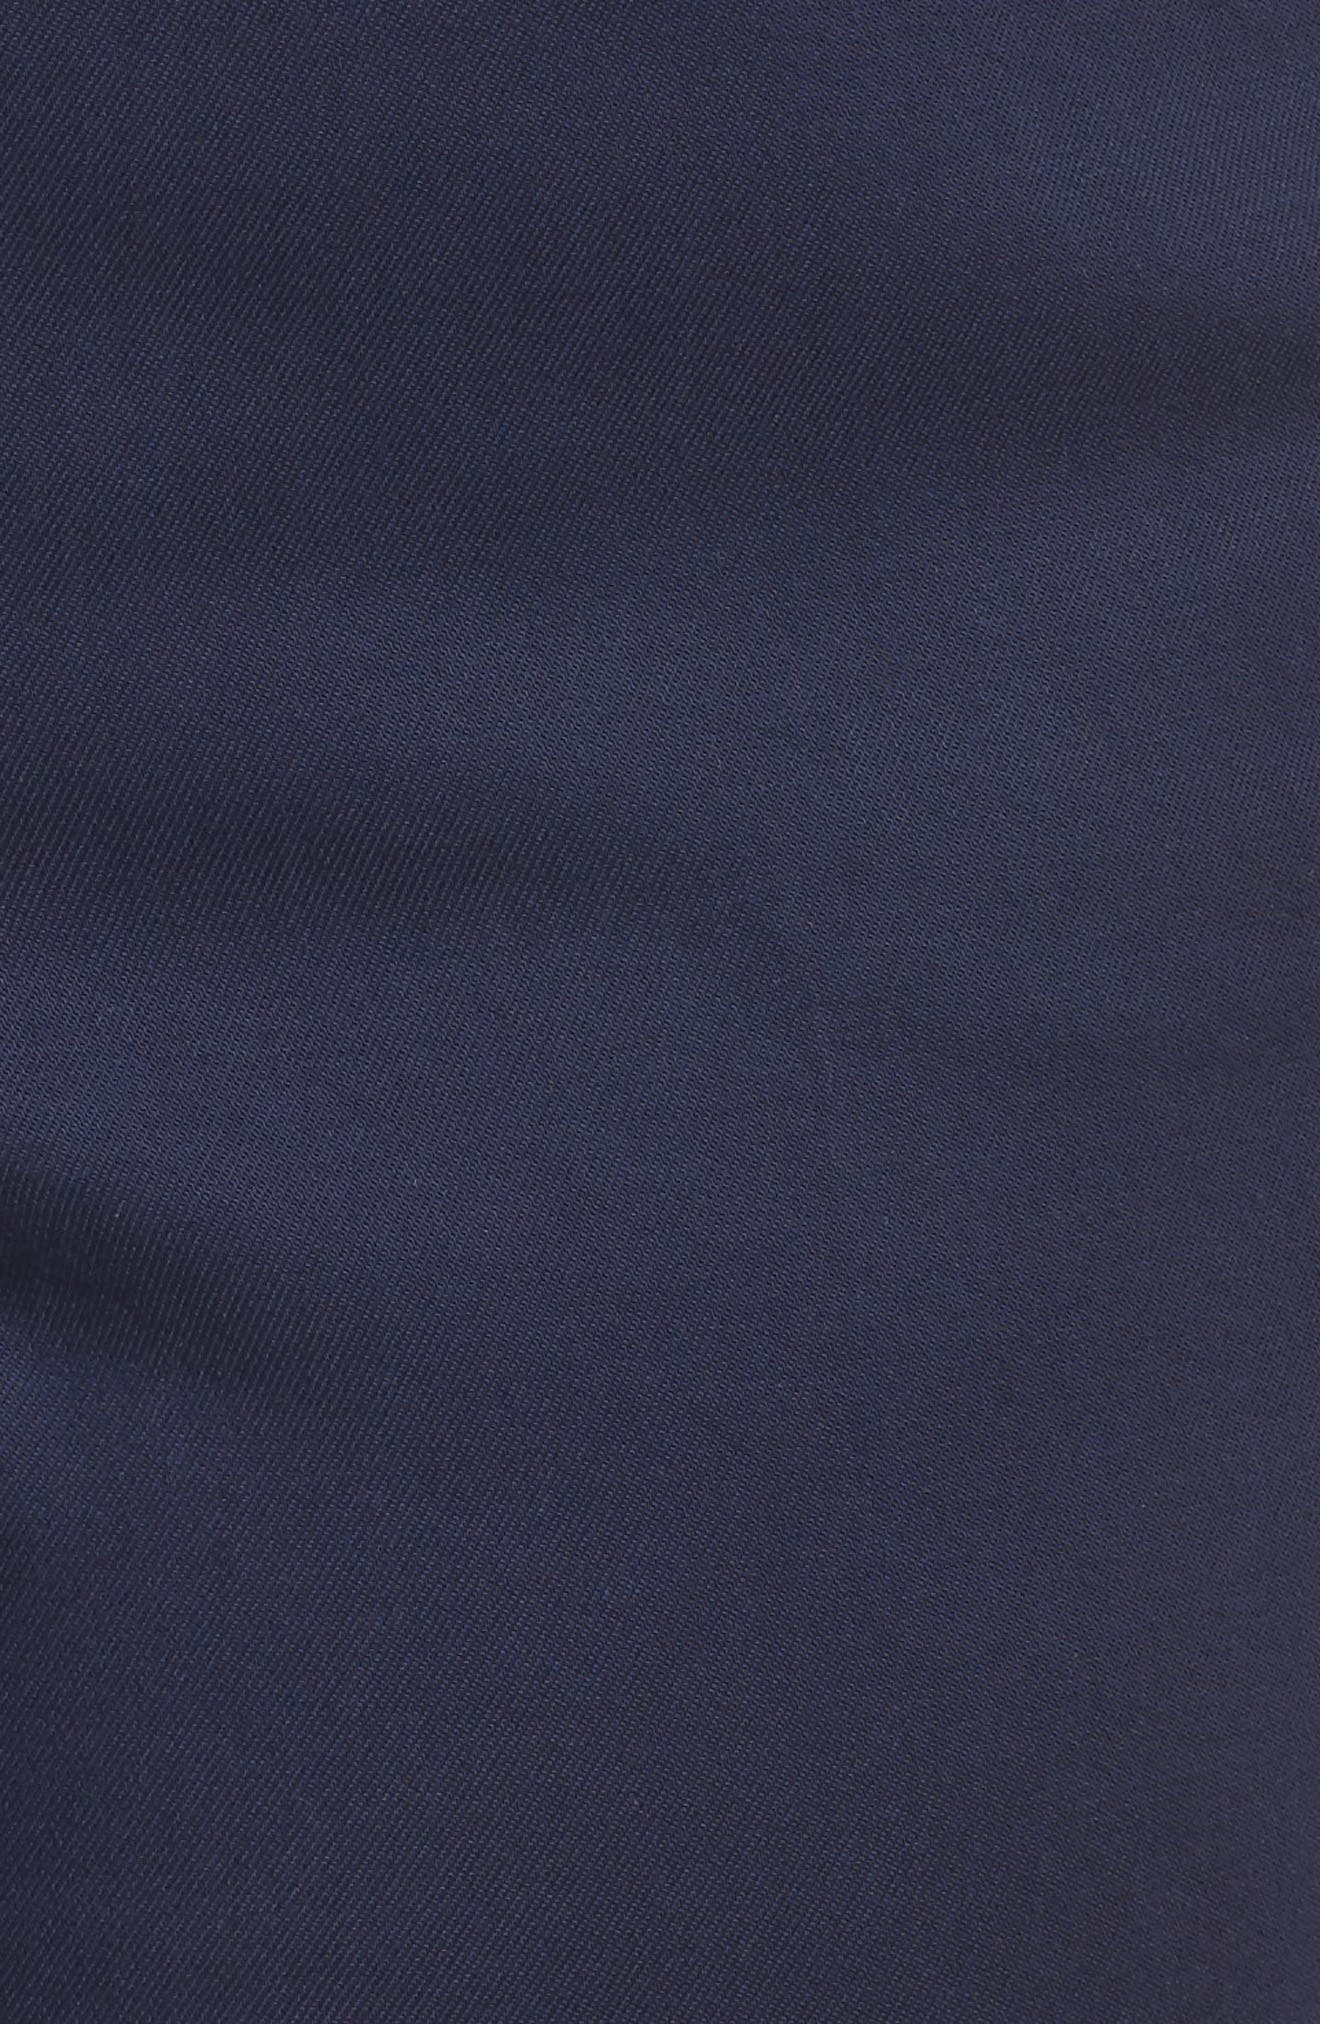 Stretch Twill Ankle Pants,                             Alternate thumbnail 5, color,                             Navy Peacoat